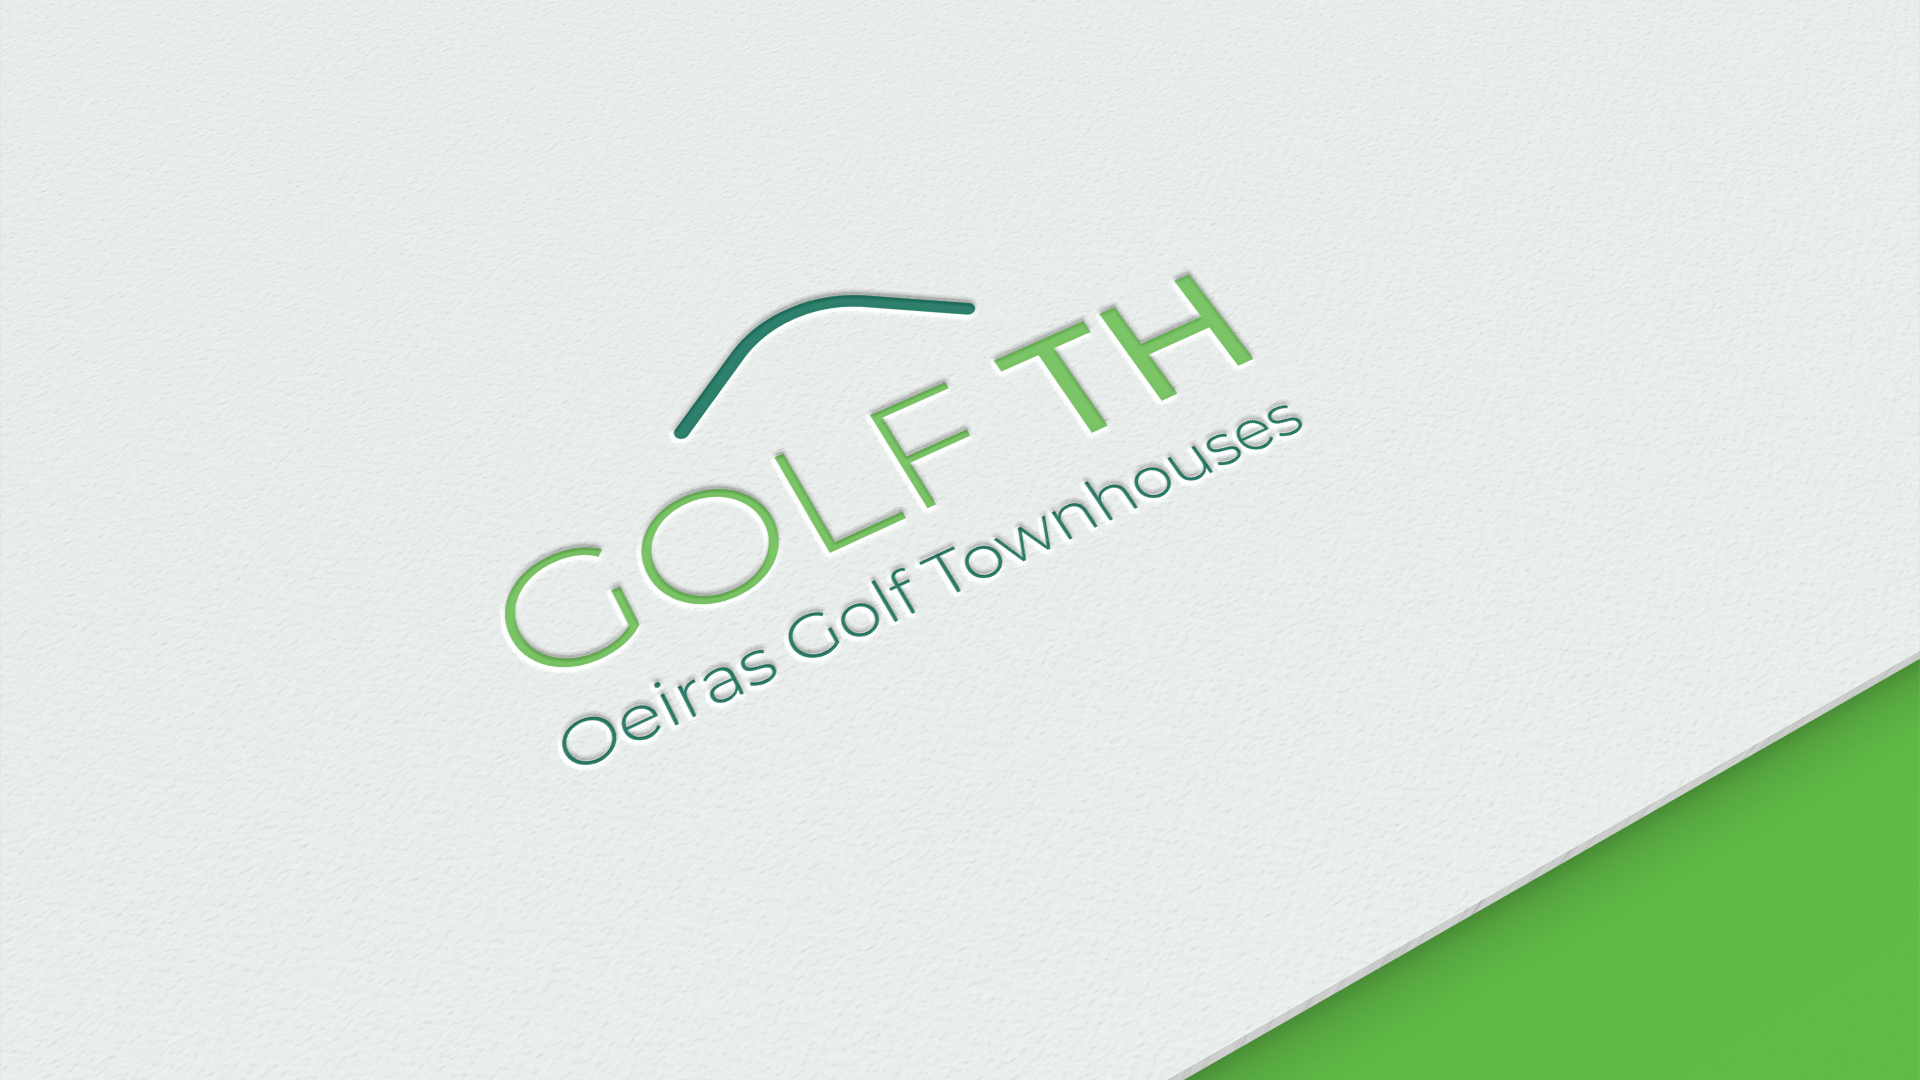 Oeiras Golf Townhouses - Logotipo